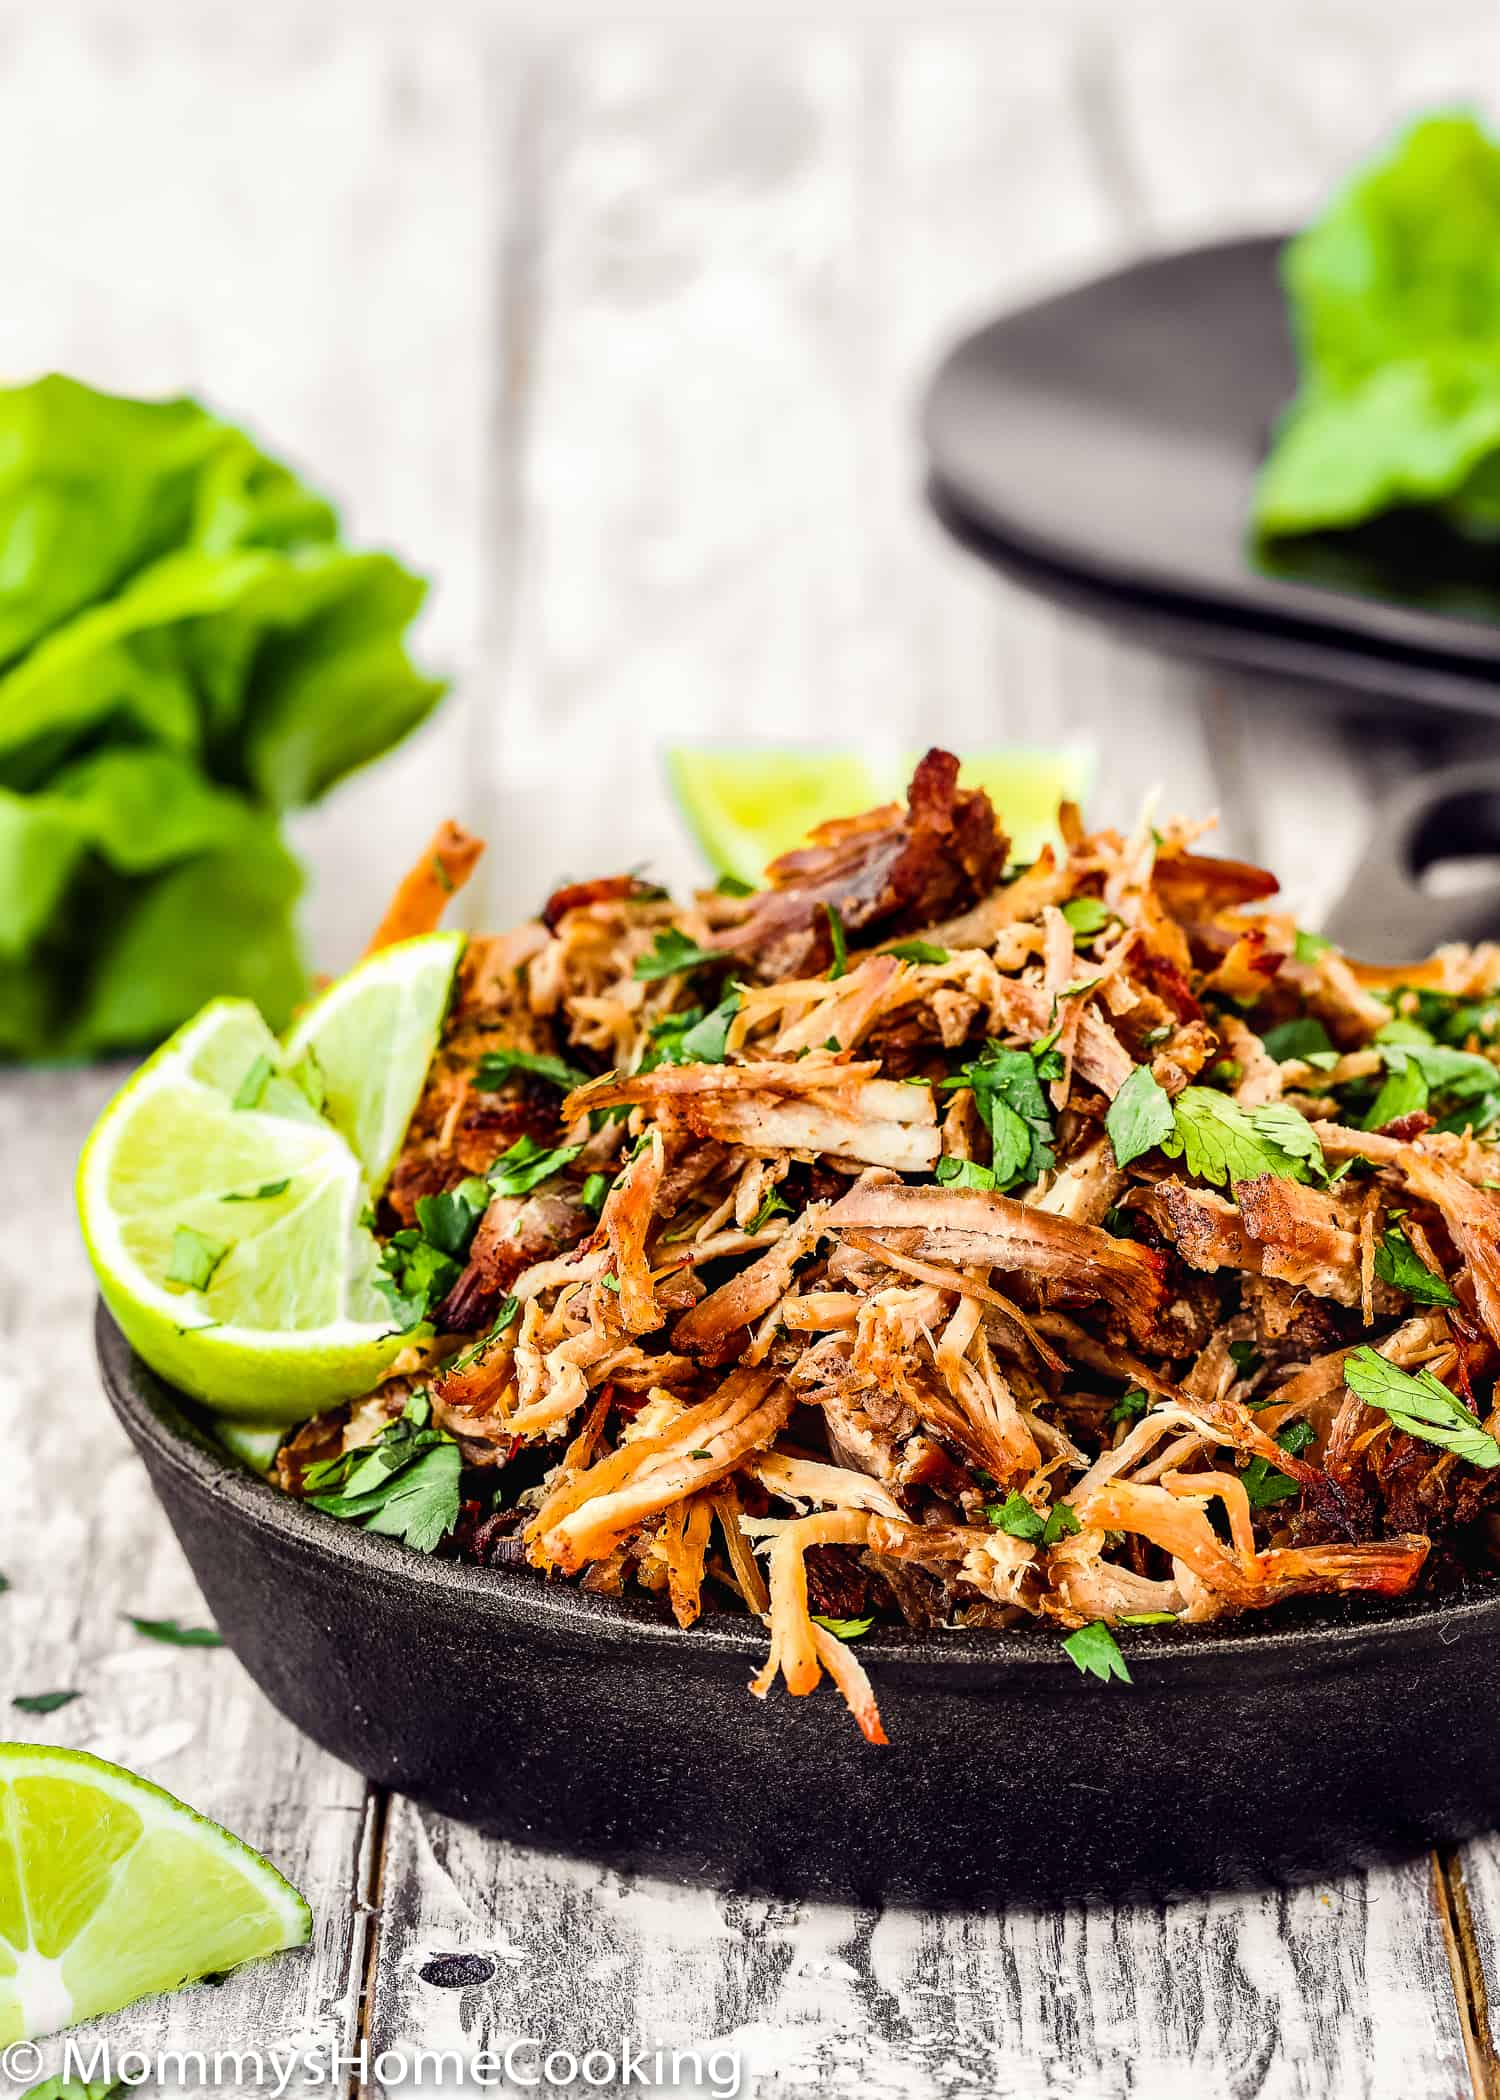 Instant Pot Crispy Pork Carnitas - Mommy's Home Cooking